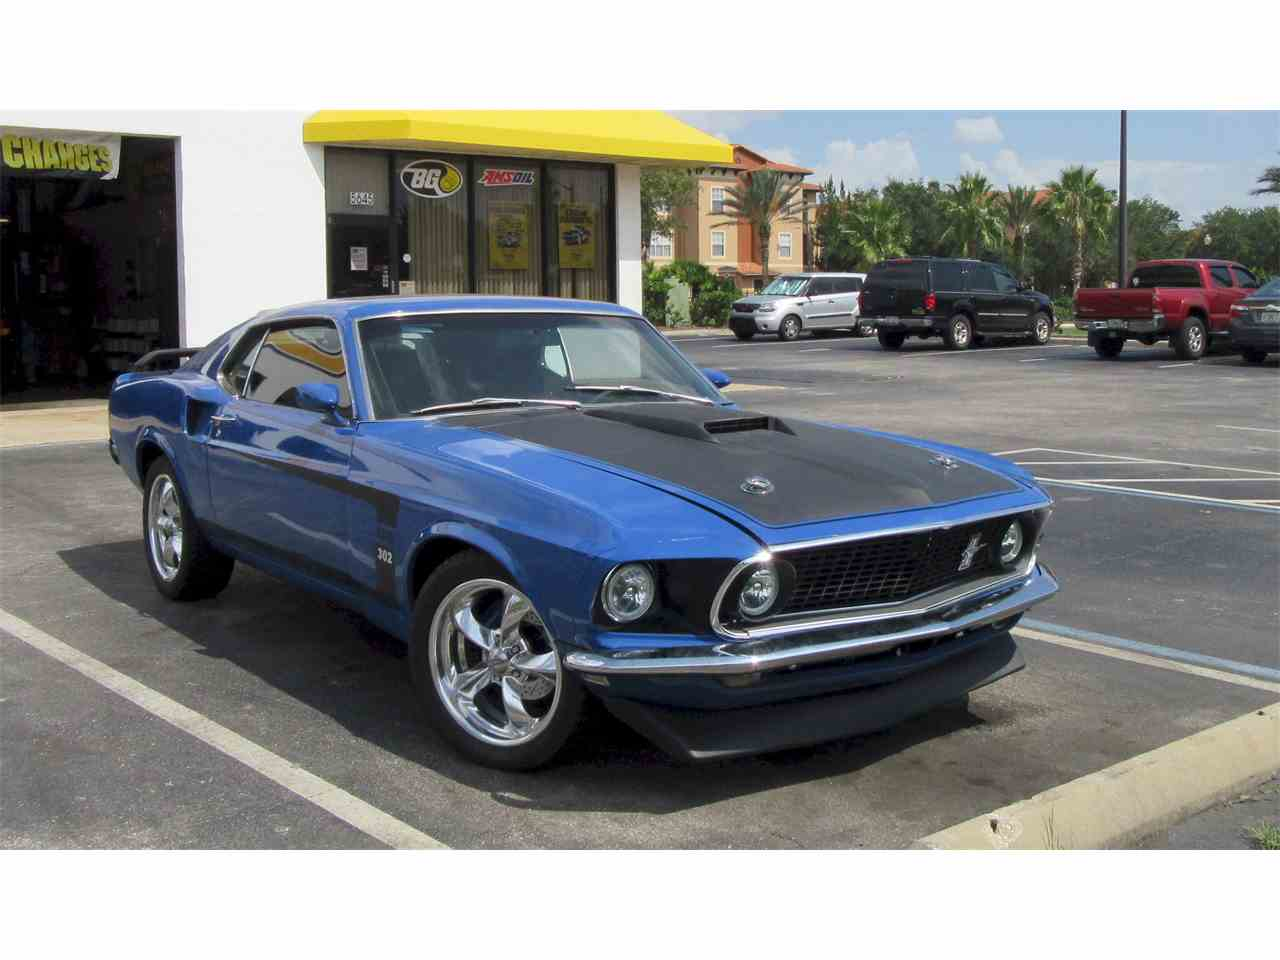 Large Picture of 1969 Ford Mustang located in Orlando Florida - $31,950.00 Offered by a Private Seller - LE51